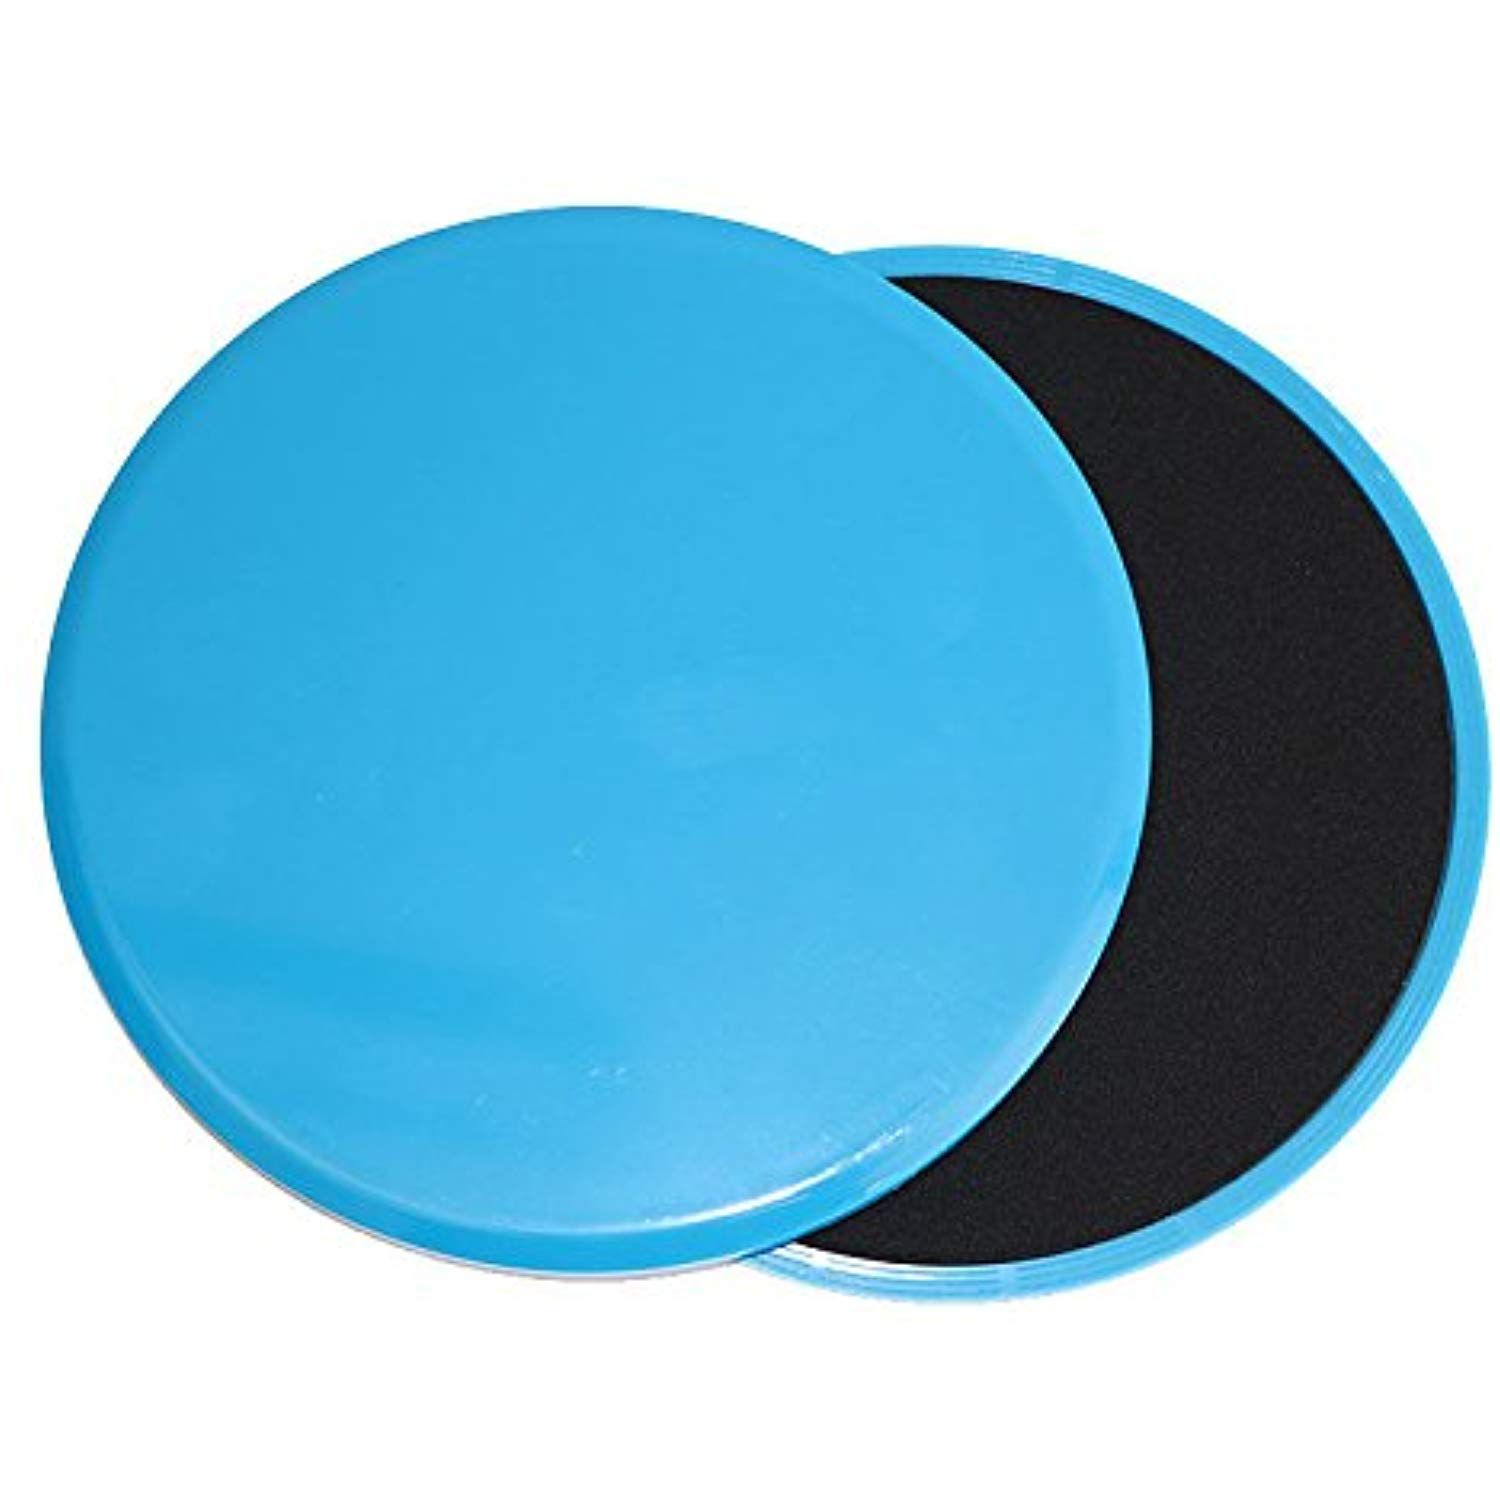 Gliding Discs Slider Fitness Disc Exercise Sliding Plate For Yoga Gym Abdominal Core Training Exercise Equipment Sports & Entertainment